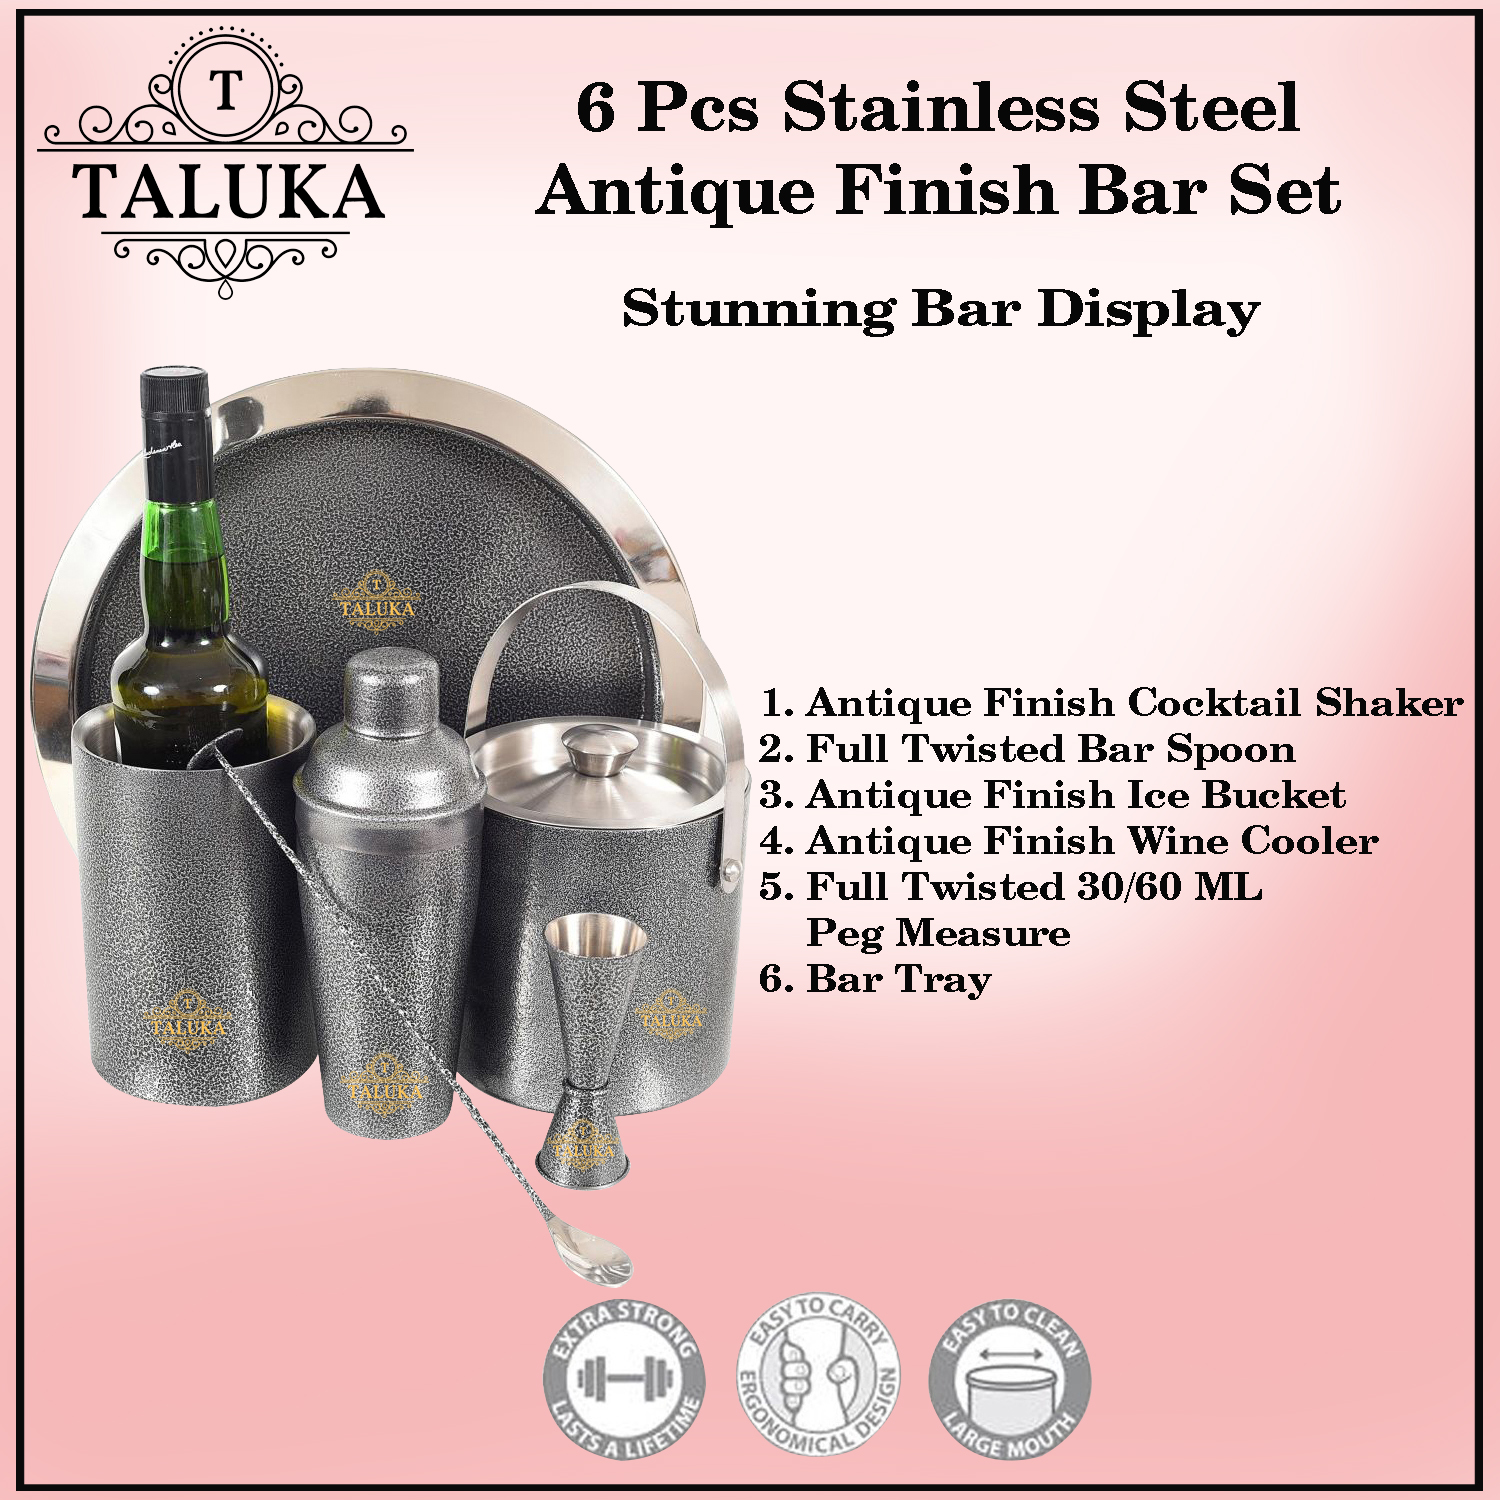 Stainless Steel Antique Black Coated 6 Pcs Bar set | Cocktail Shaker 750 ml | Ice Bucket Double Wall 1500 ML | Peg Measure | Wine Cooler | Bar Spoon | Serving Tray for Bar Home Hotel Restaurant